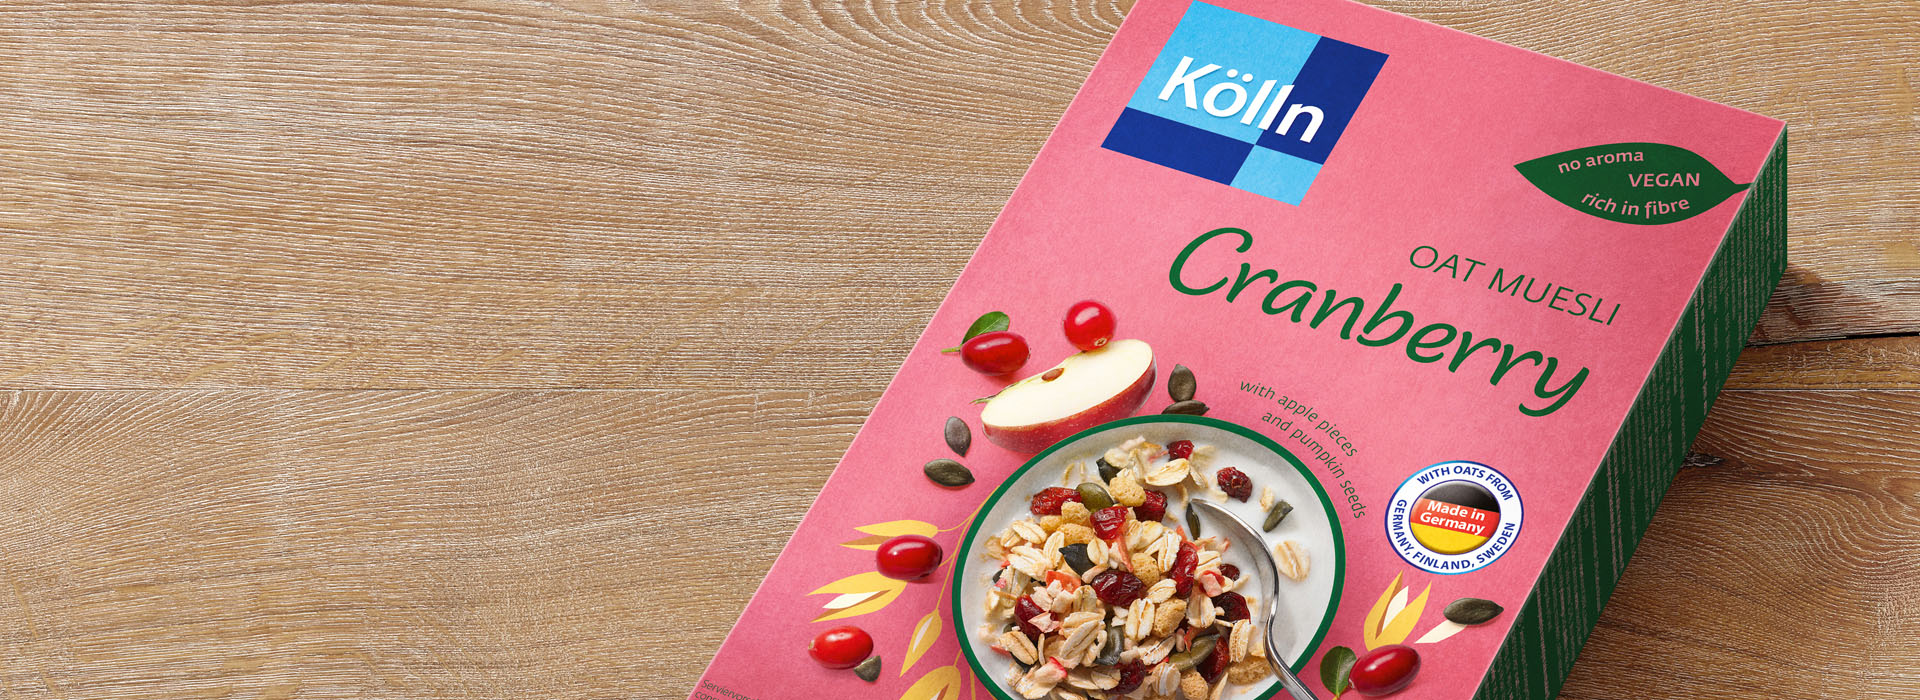 Koelln Oat Muesli Cranberry Pack on Table